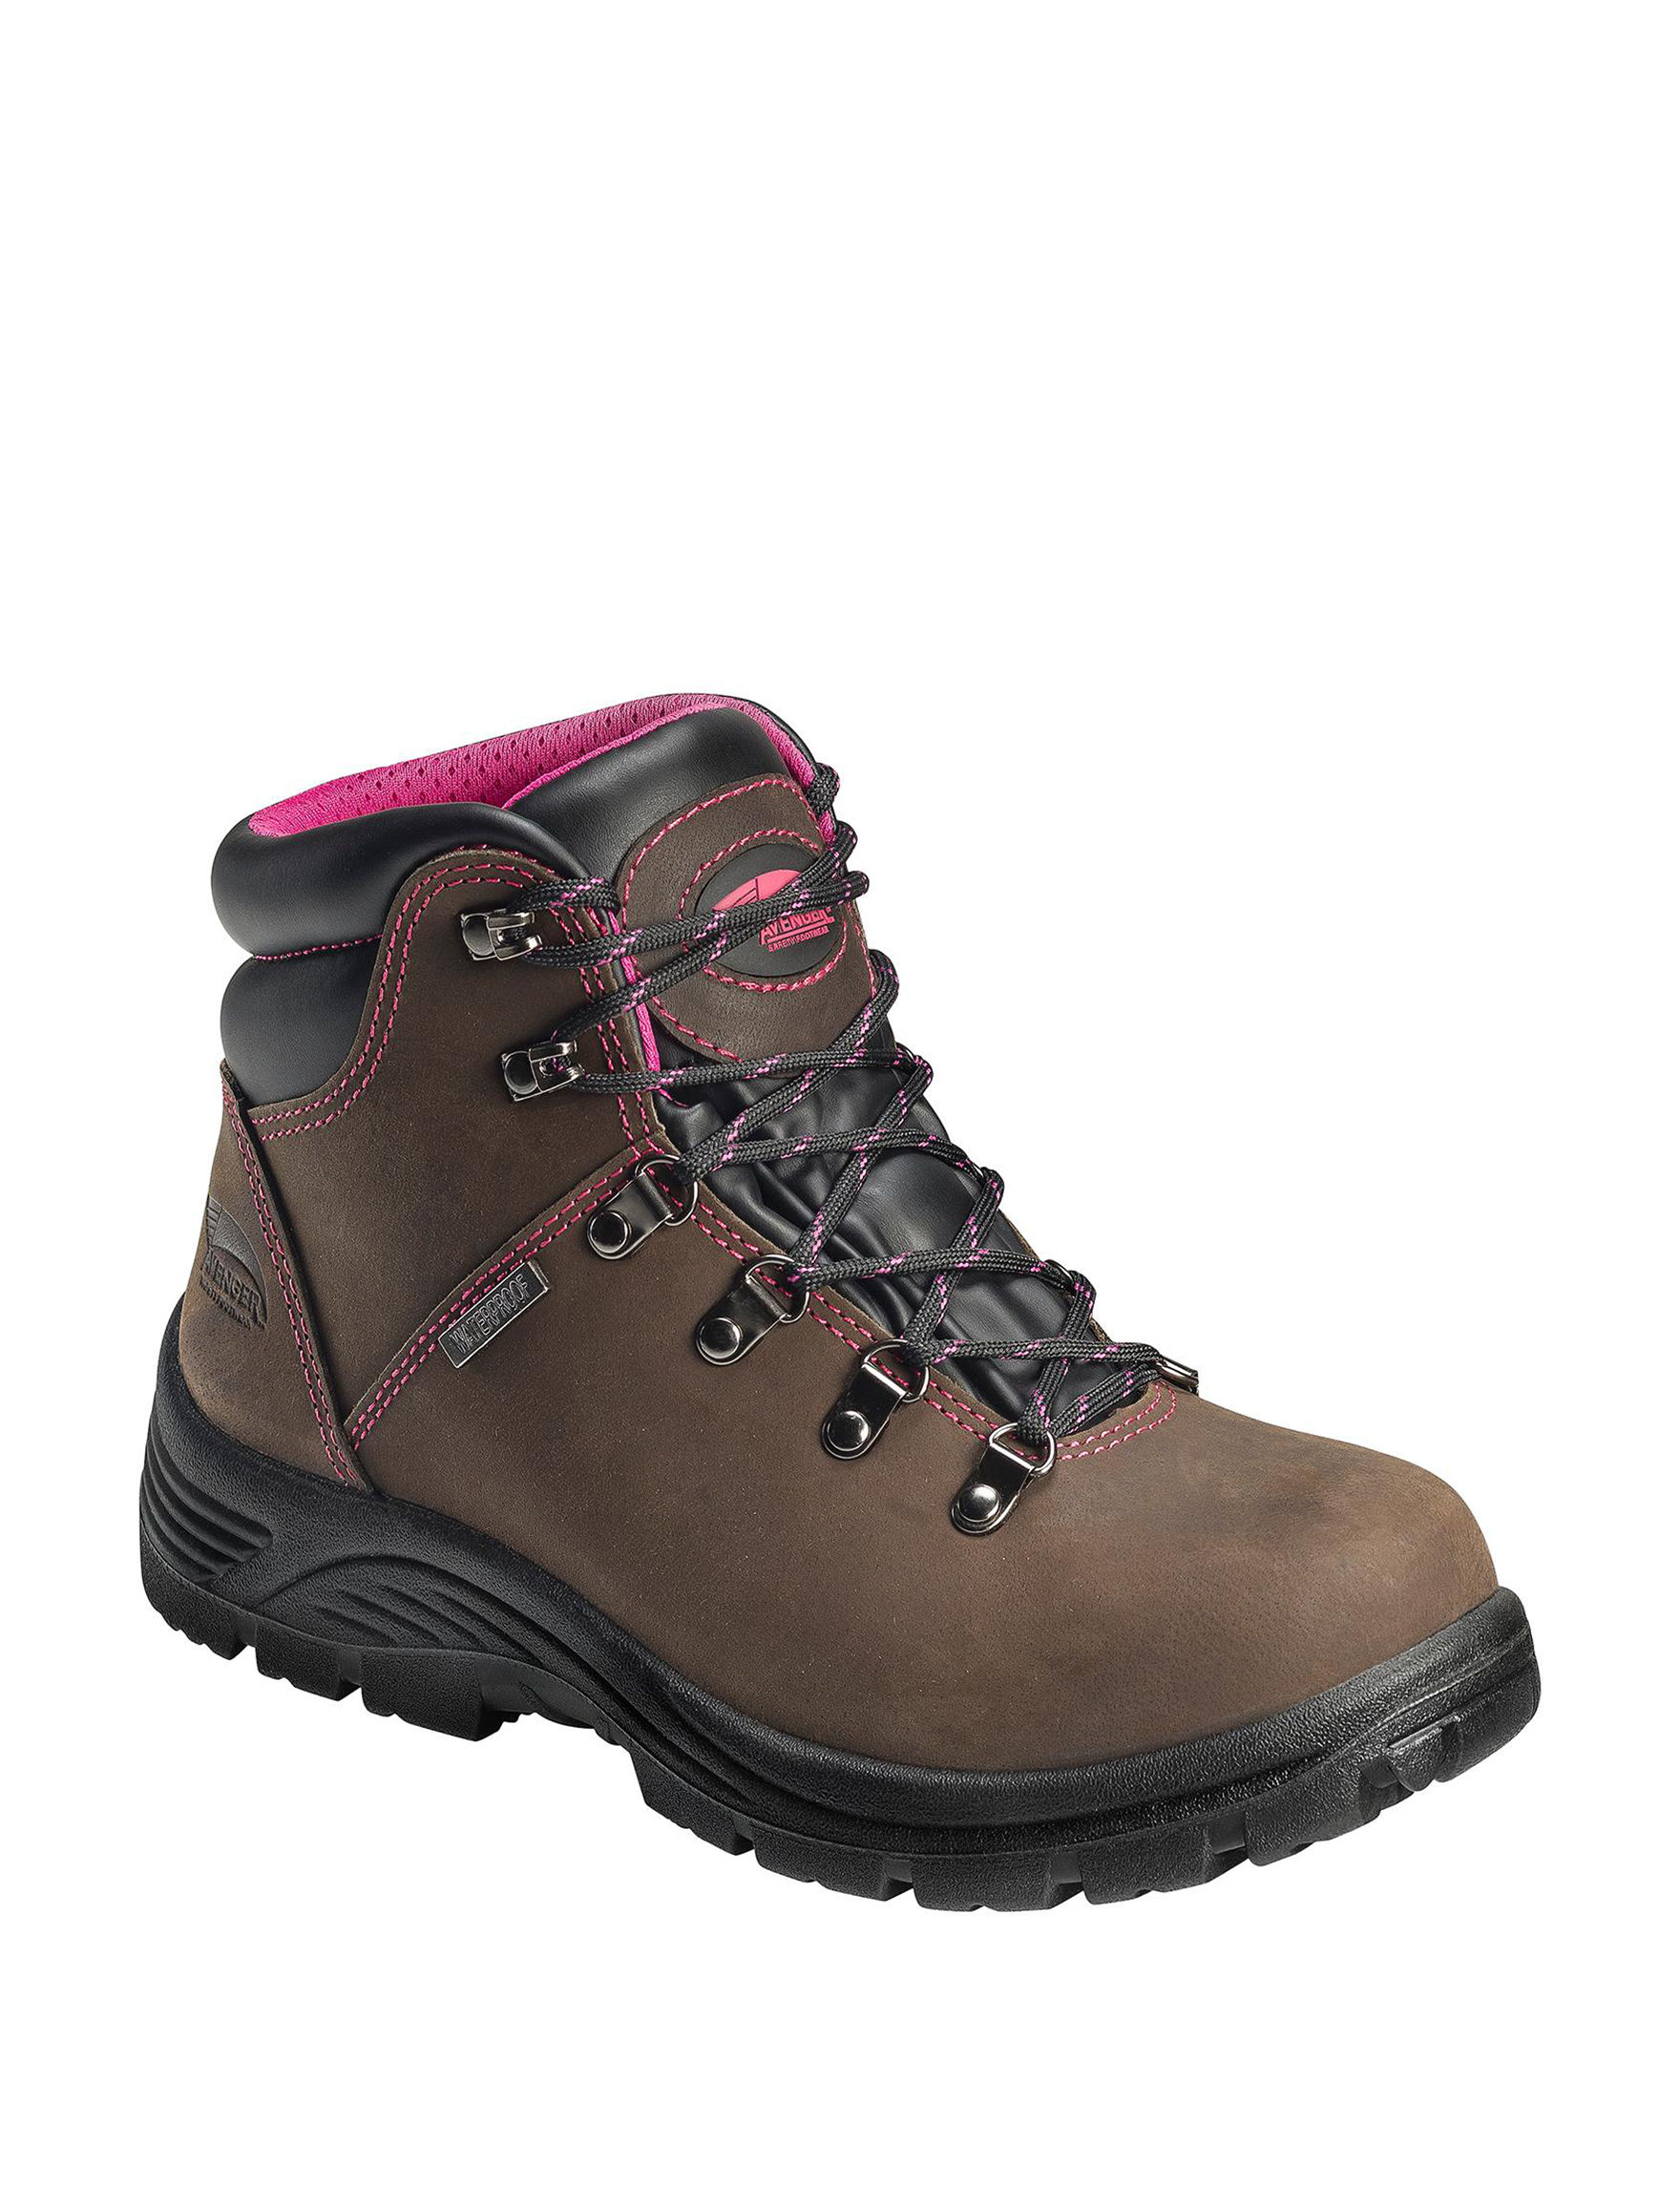 Avenger Brown Steel Toe Waterproof